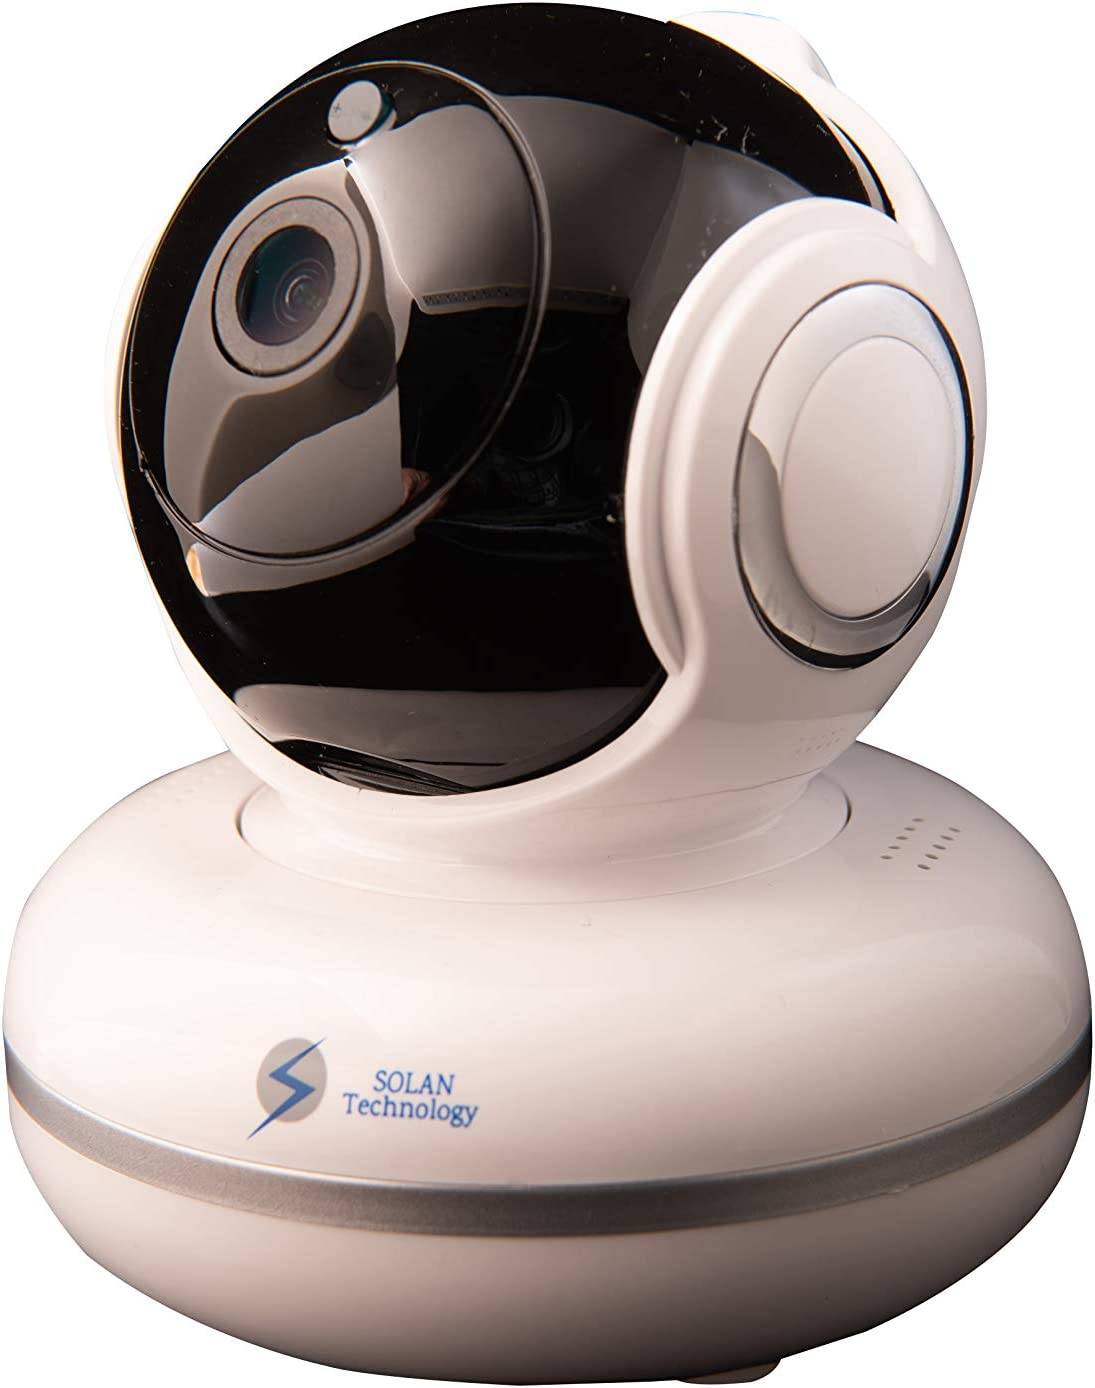 【2019 Newest Version】 FullHD 19201080P Wi-Fi Surveillance Camera Pan/Tilt/Zoom-Best Smart App, Wireless Security Camera-Night Vision, Motion Detection, Pet Camera, Video Baby Monitor iOS/Android, Wor